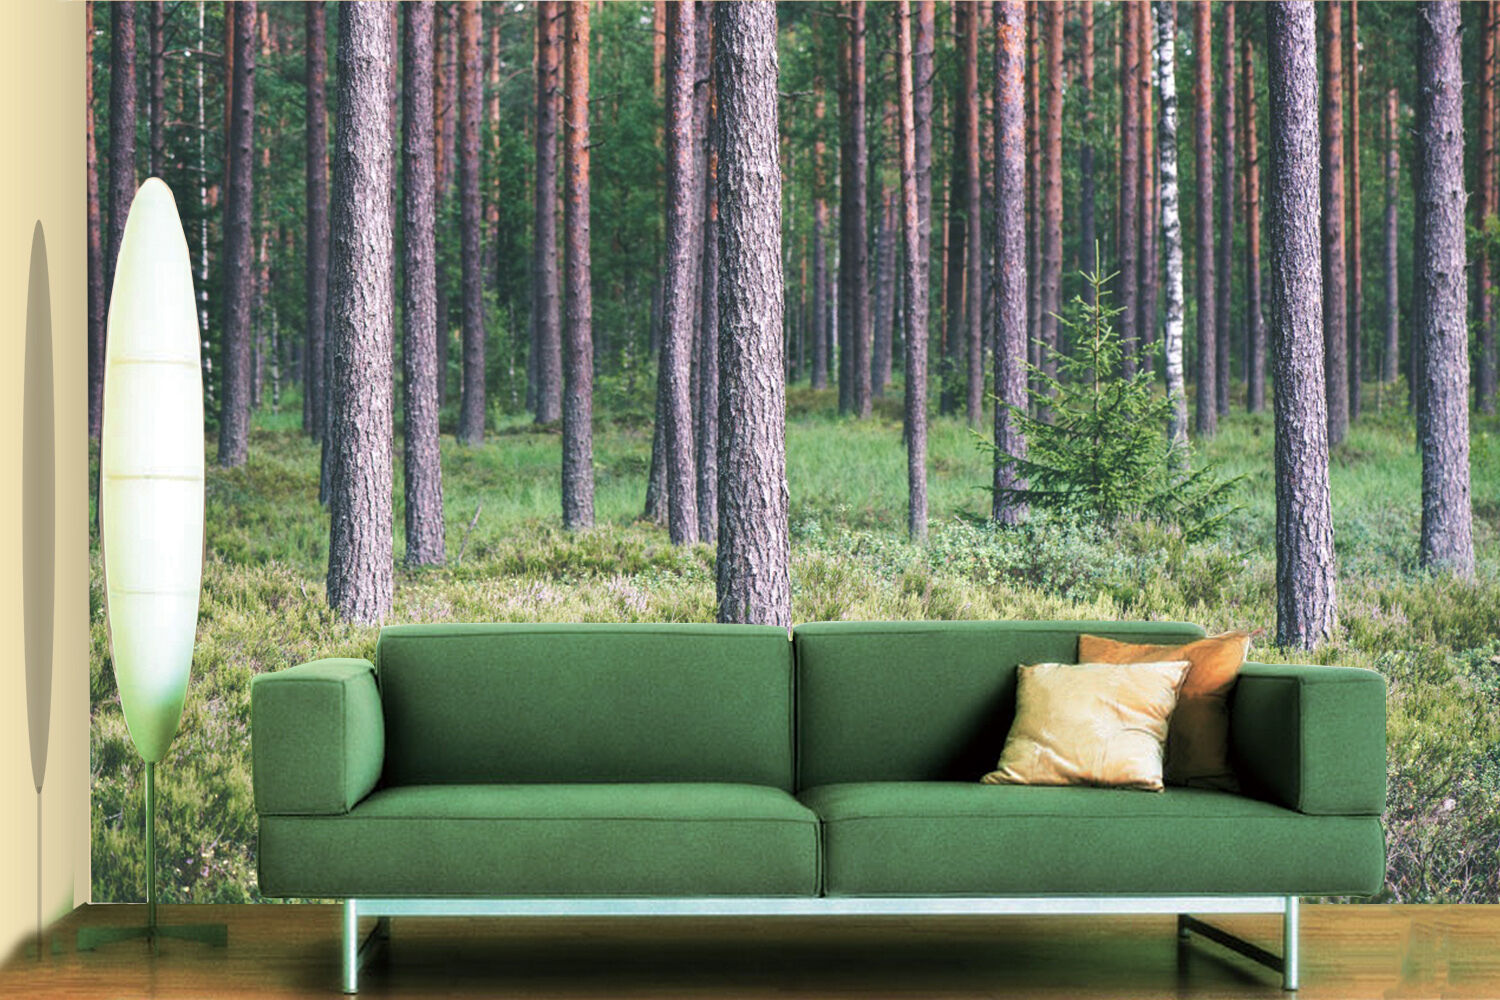 3D tree forest lawn Wall Paper wall Print Decal Wall Deco Indoor wall Mural